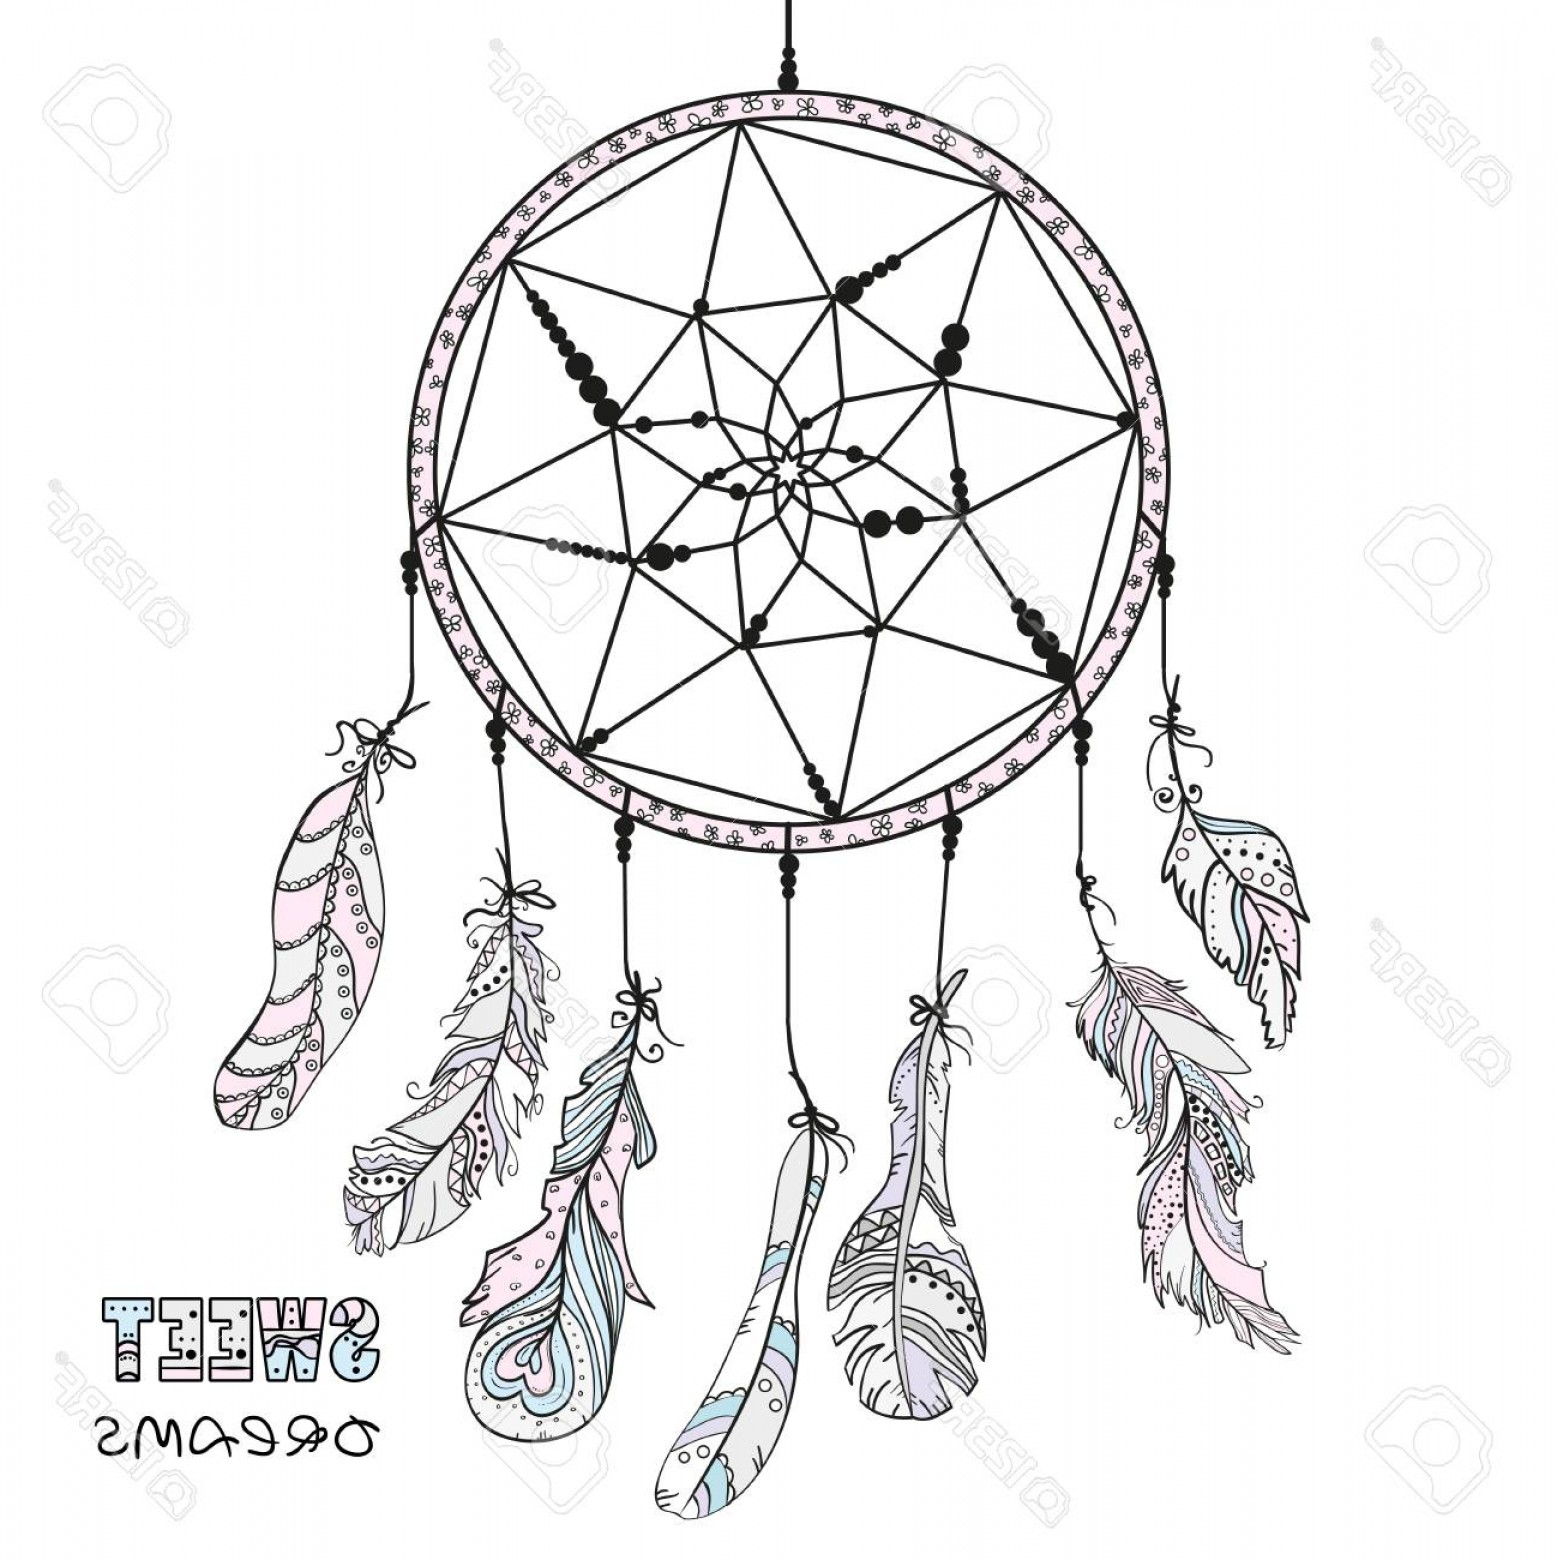 Dreamcatcher Tattoo Vector: Photostock Vector Dreamcatcher Tattoo Art Mystic Symbol Abstract Feathers Print For Polygraphy Posters And Textiles Am